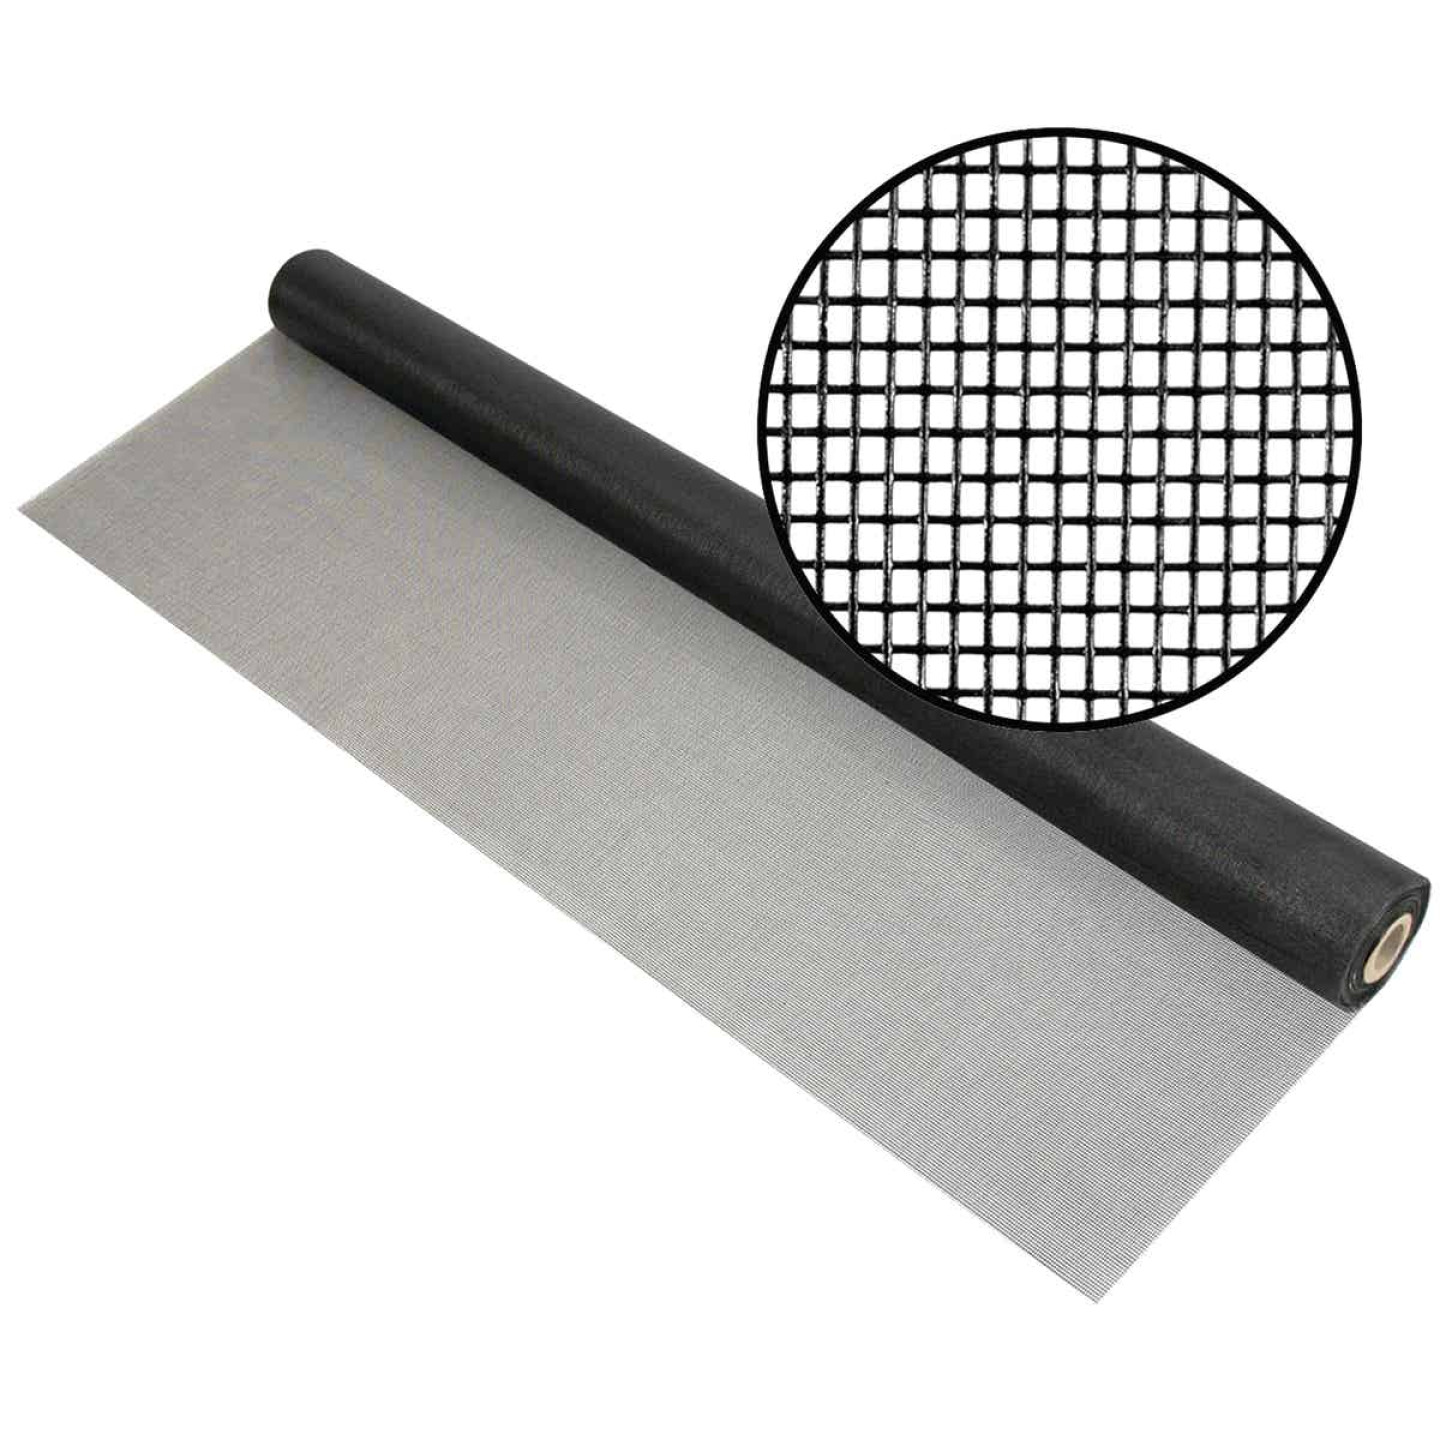 Phifer 96 In. x 100 Ft. Charcoal Fiberglass Pool Screen Image 1